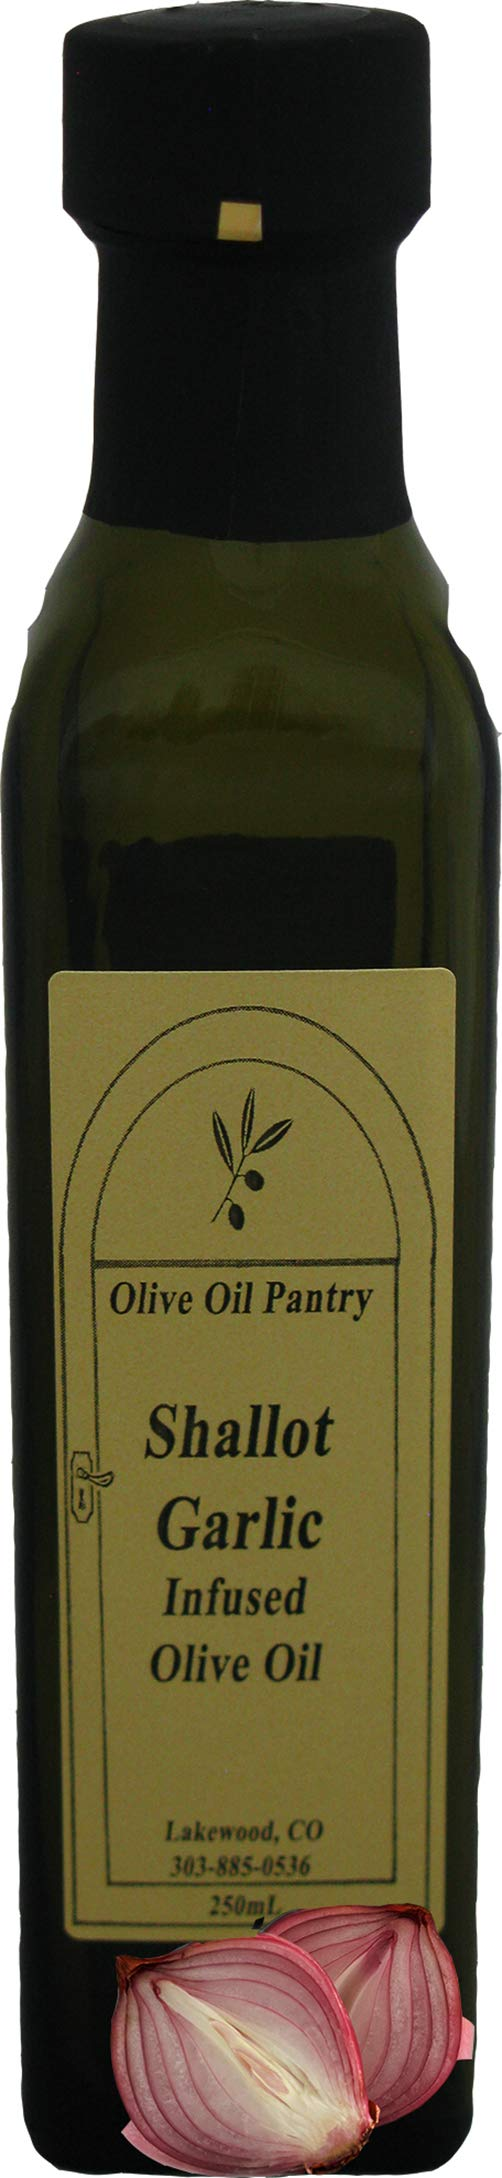 Olive Oil Pantry Shallot Garlic Infused Olive Oil by Olive Oil Pantry